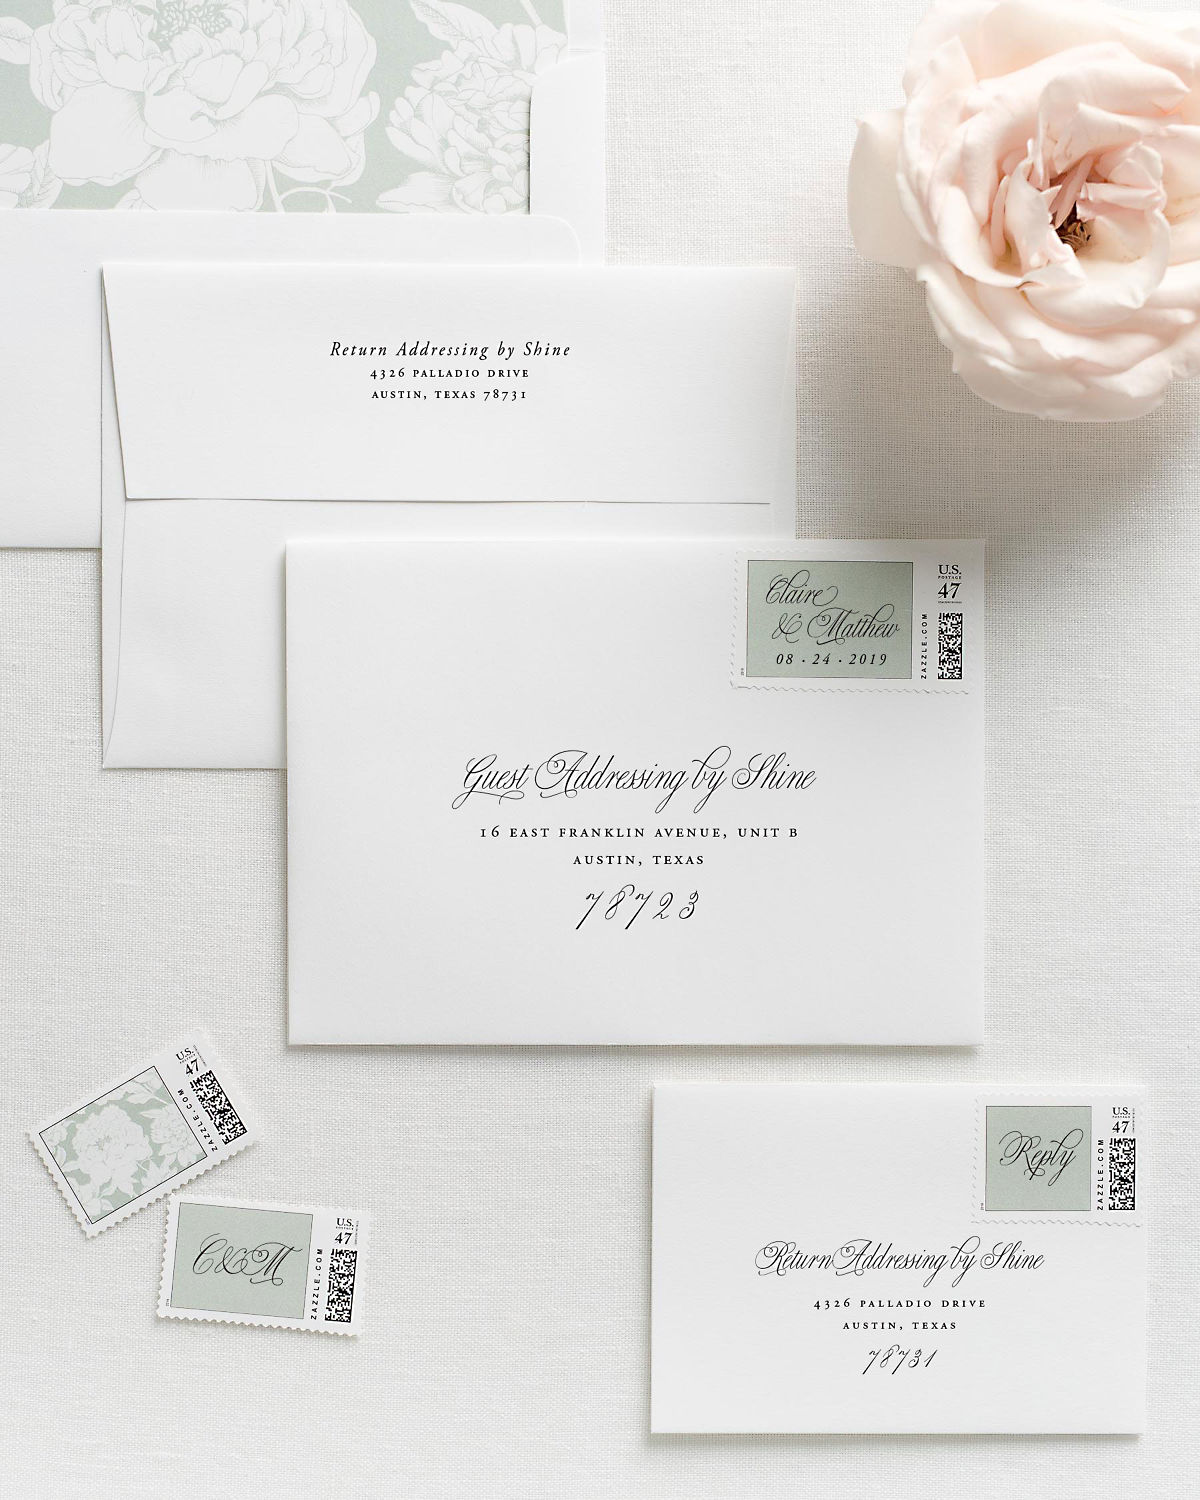 Wedding Invitation Envelopes with Pre-Printed Addresses and Matching Sea Salt Personalized Postage